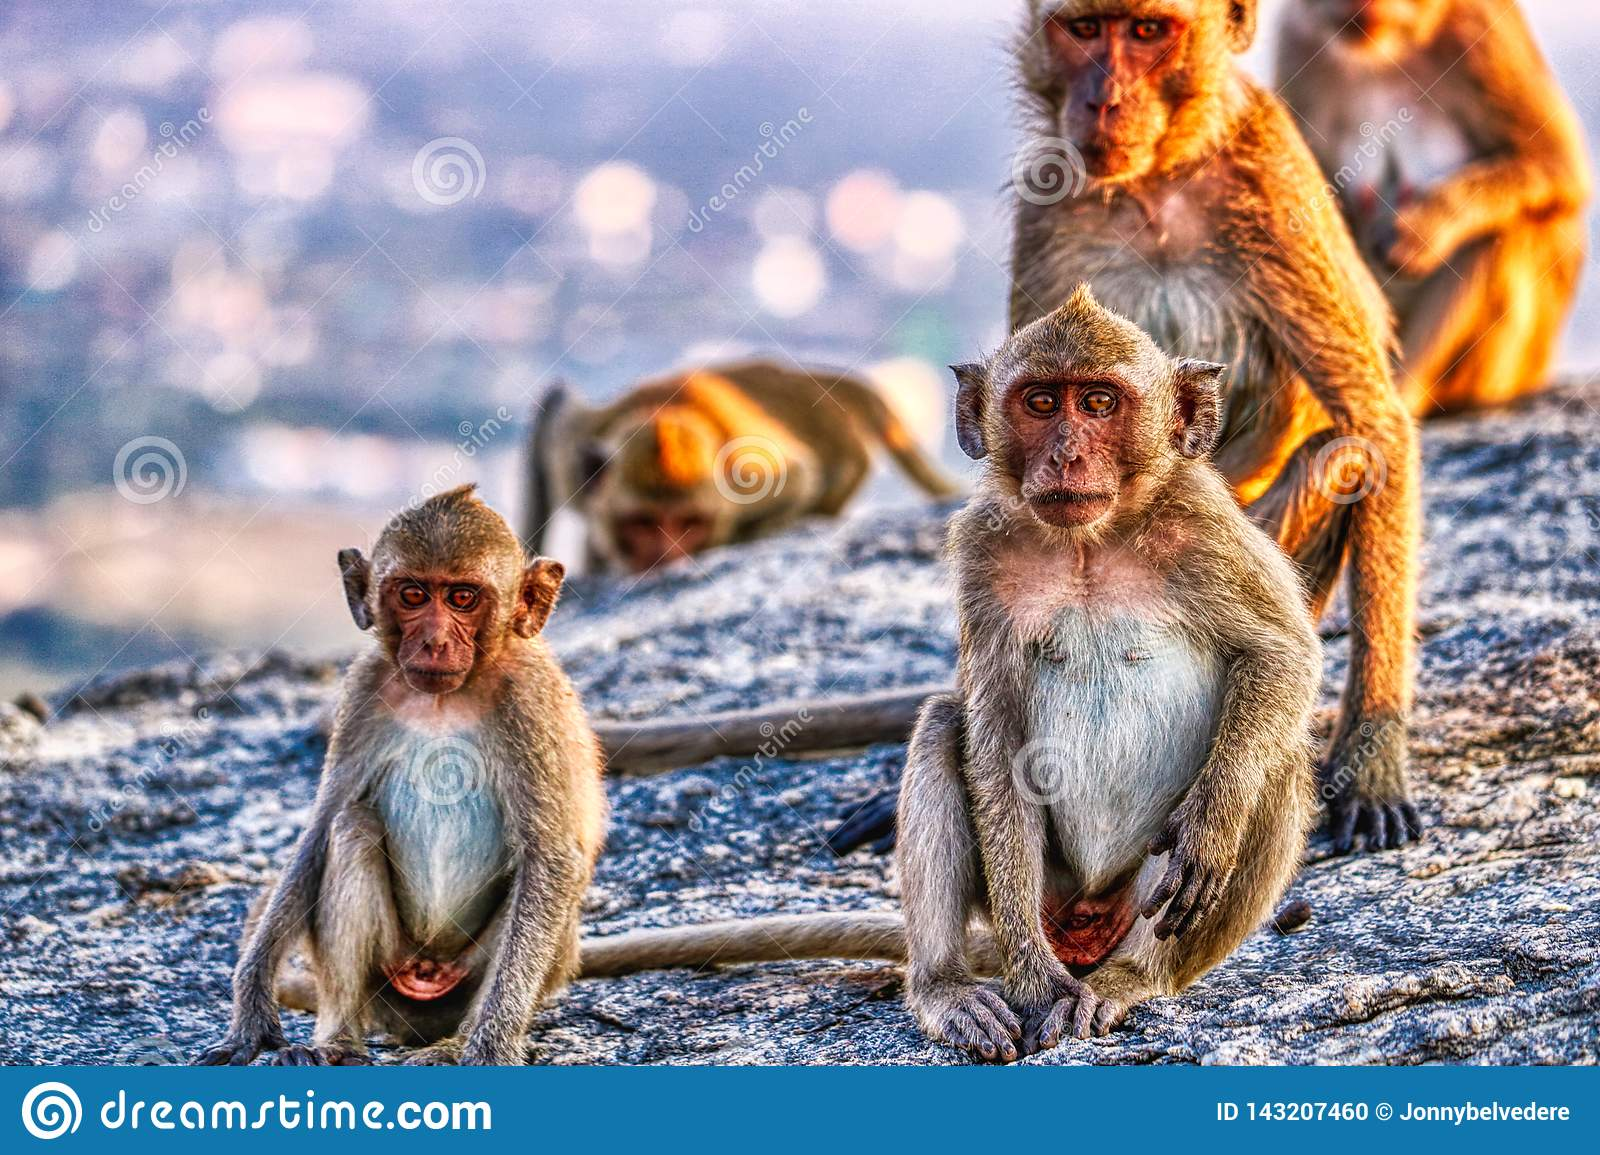 This unique image shows the wild monkeys at dusk on the Monkey Rock in Hua Hin in Thailand